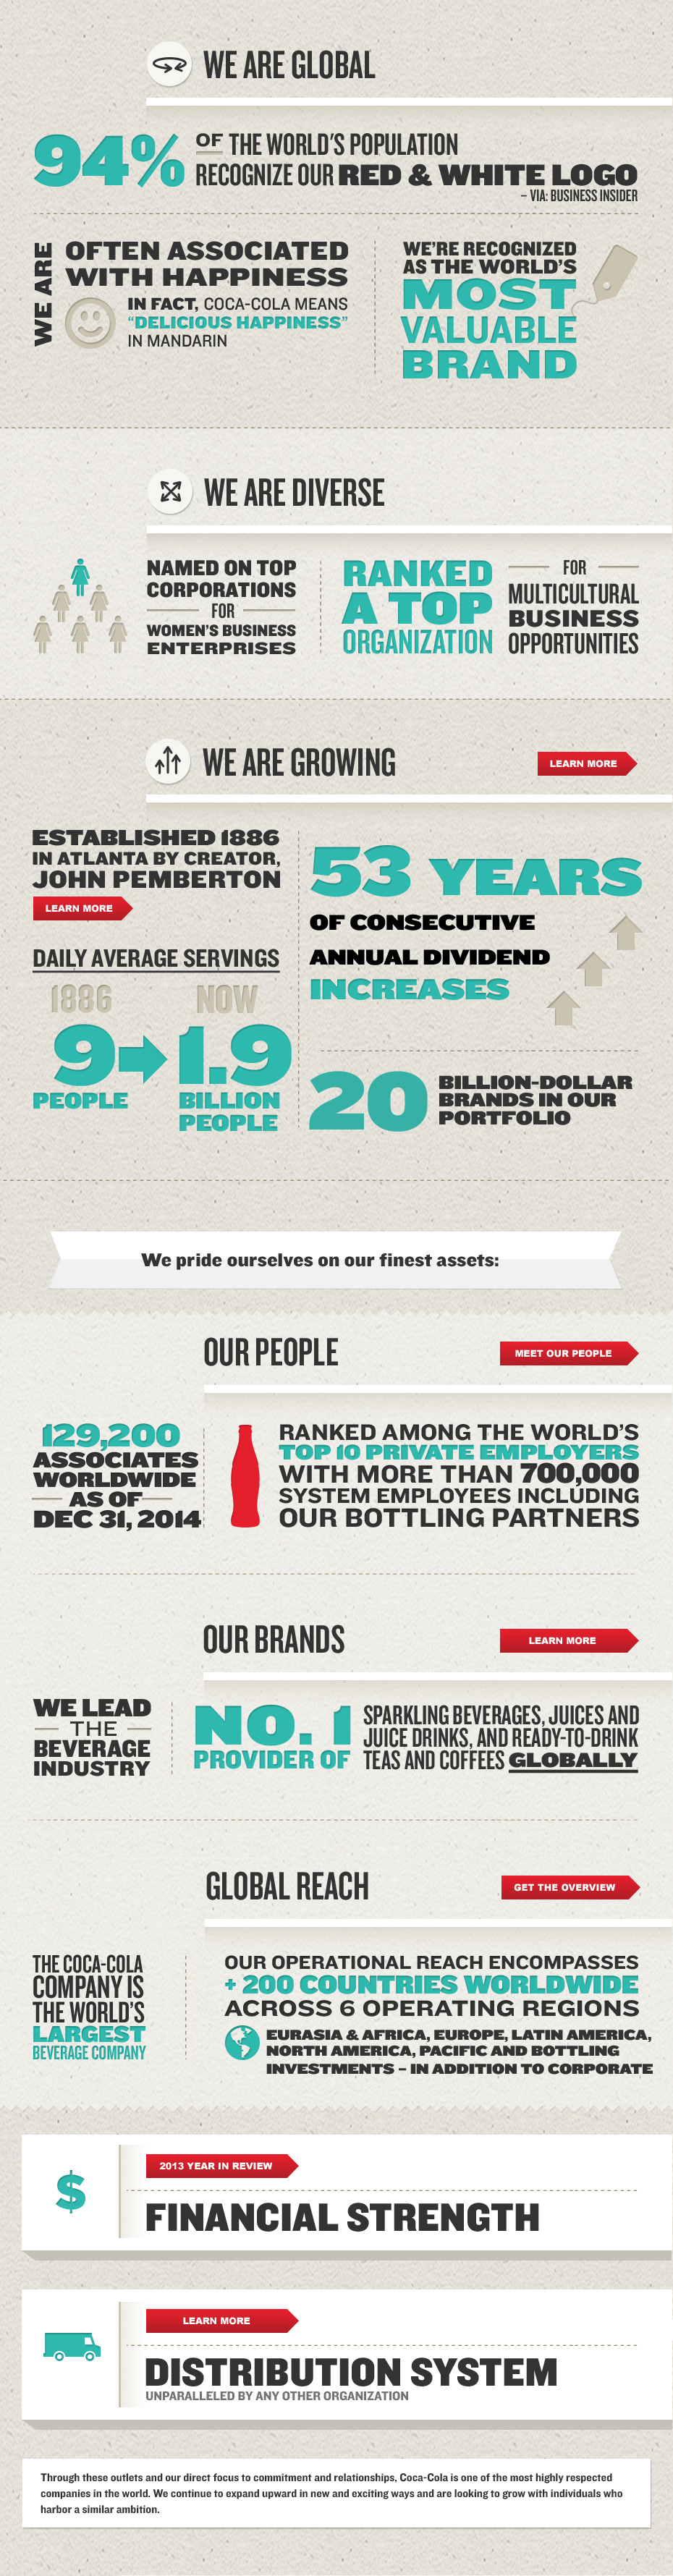 Pin by Yahya Şahin on Books Worth Reading | Coca cola, Cola, Infographic